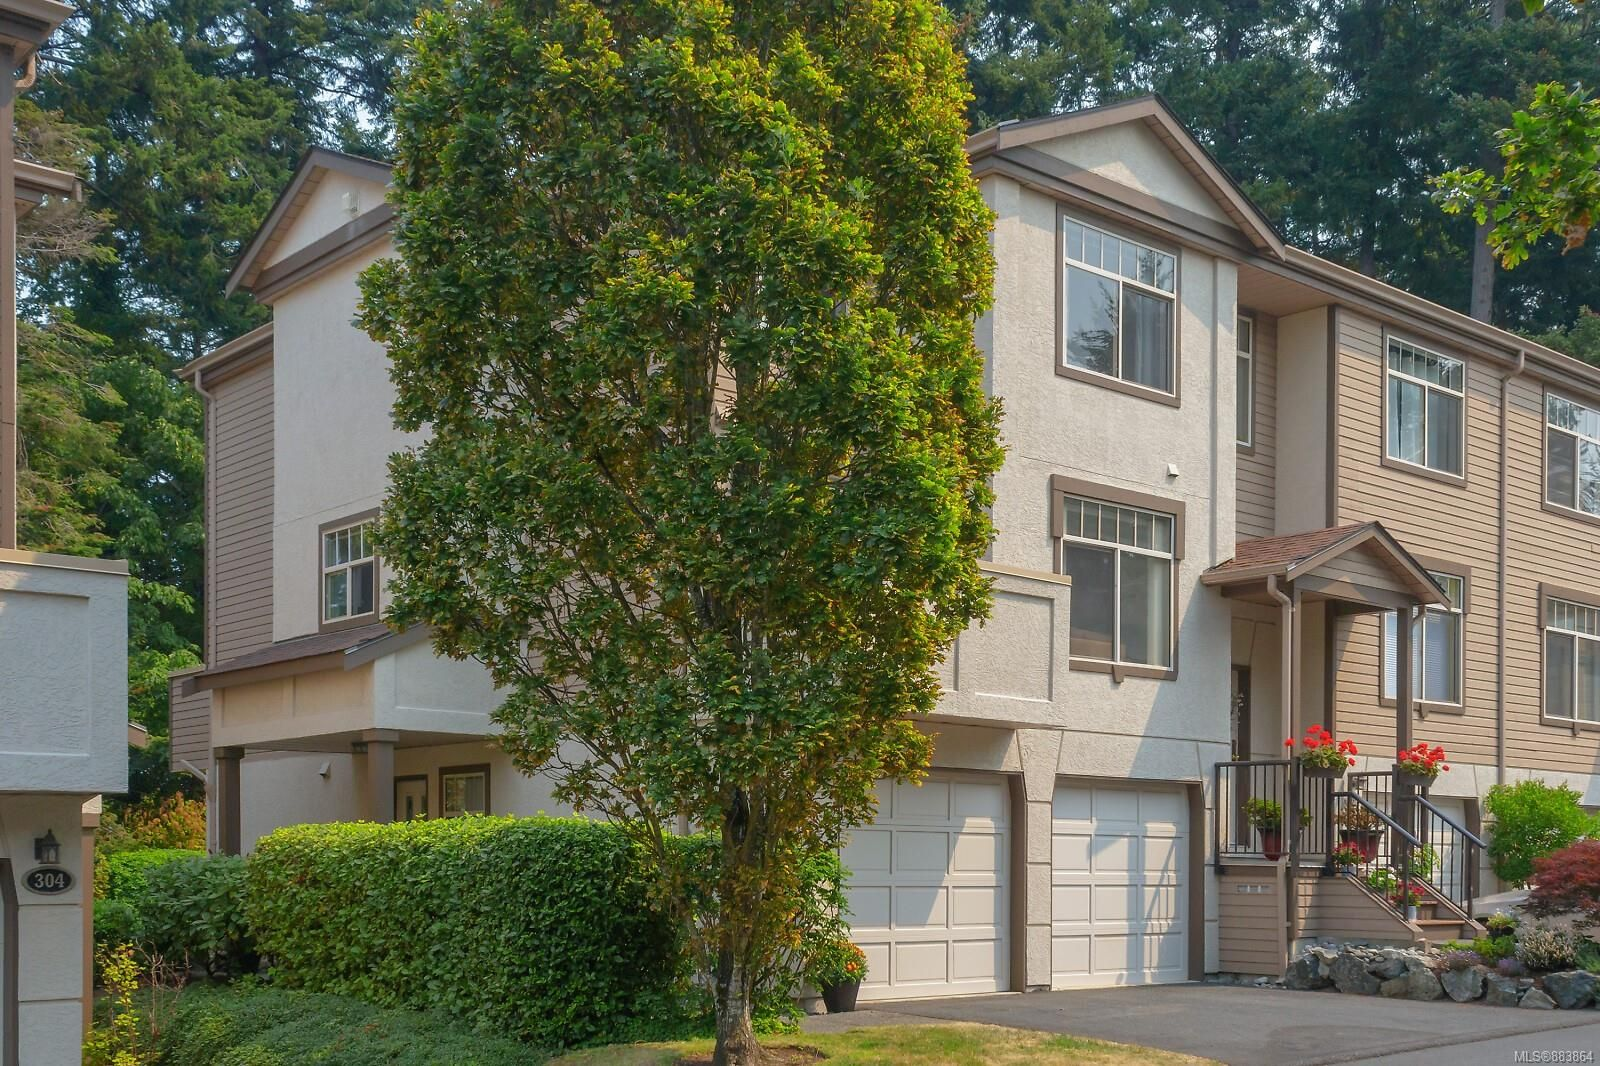 Main Photo: 401 288 Eltham Rd in View Royal: VR View Royal Row/Townhouse for sale : MLS®# 883864